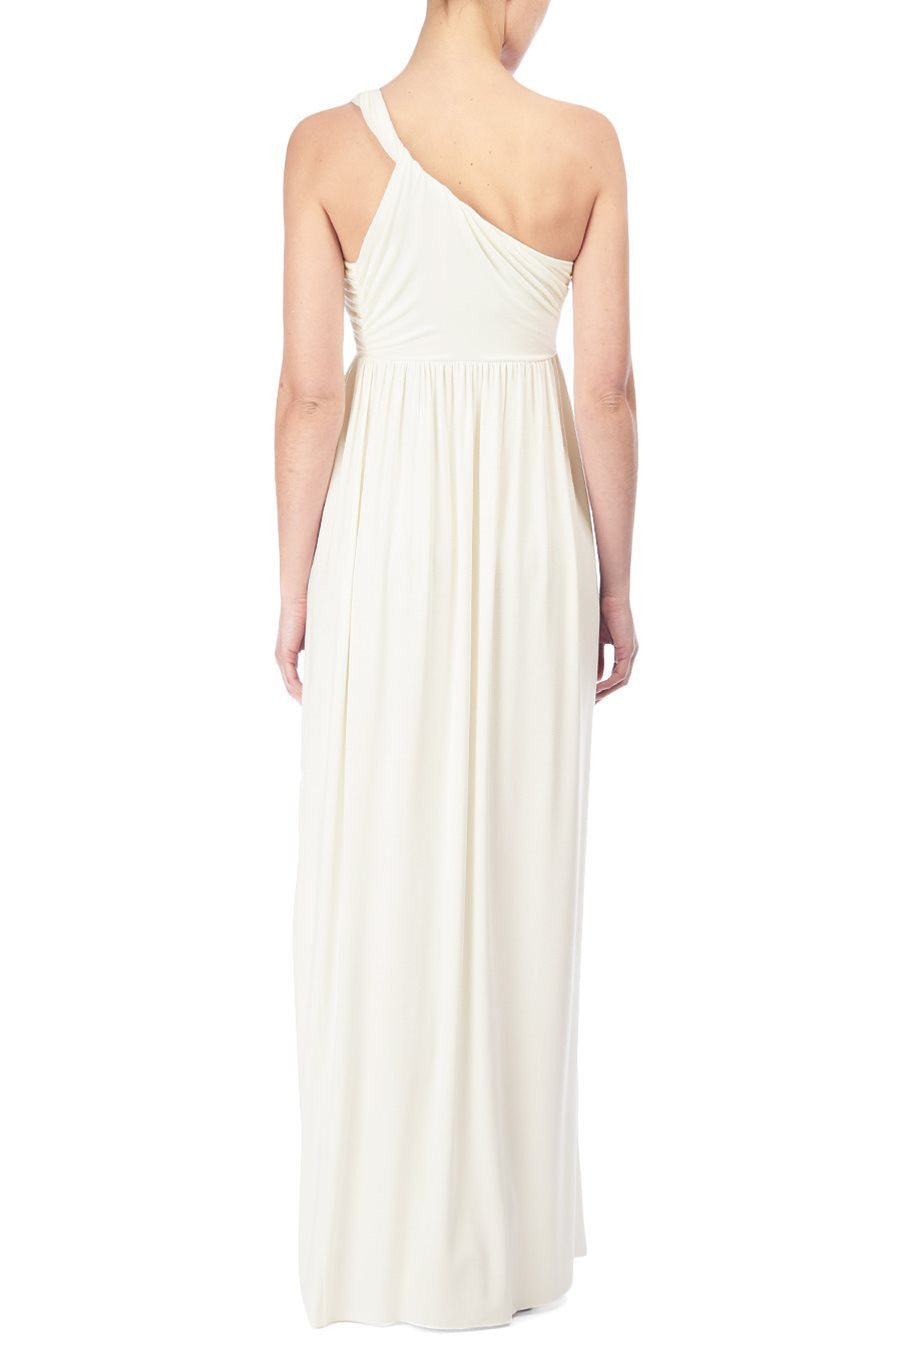 LONG TWIST SHOULDER DRESS - WHITE